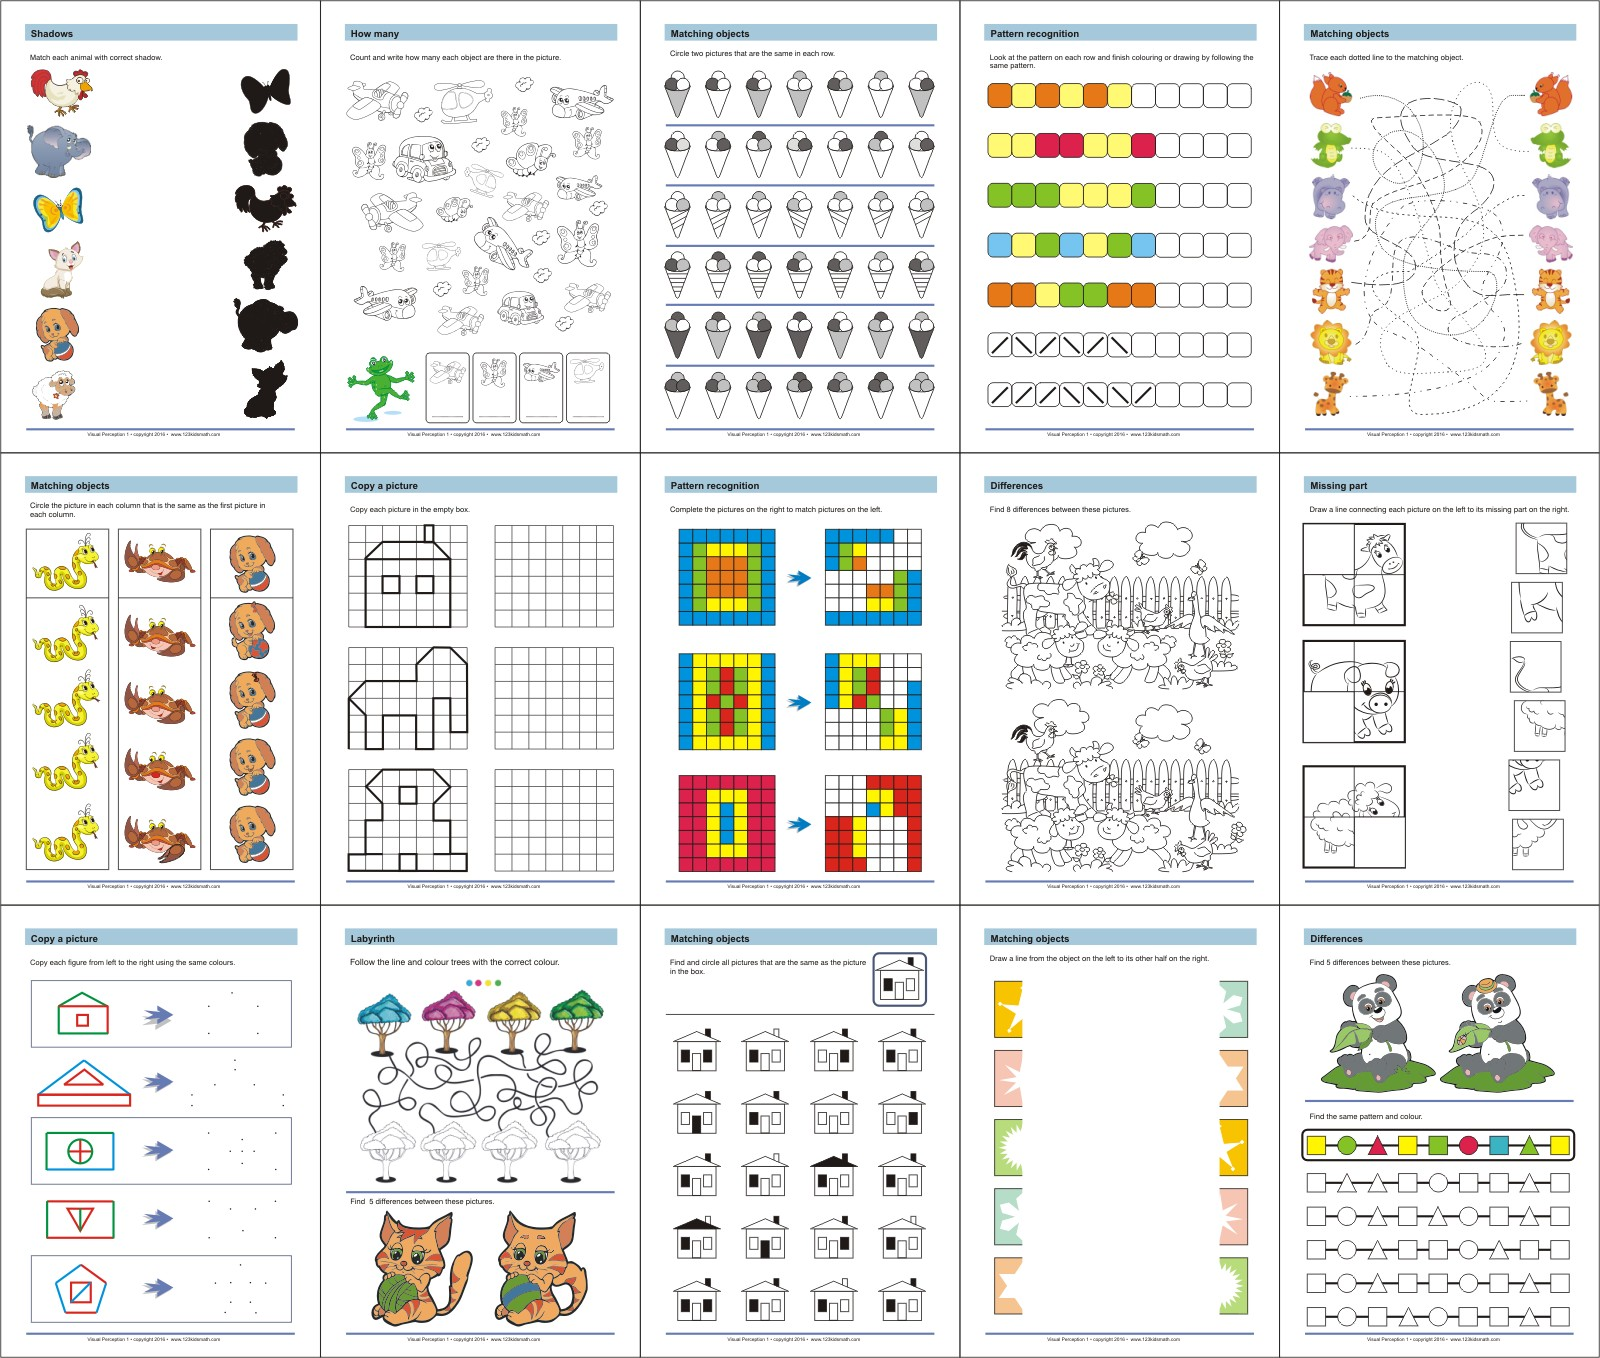 Printable workbooks fun and learn activities for kids visual perception activities visual motor skills visual closure worksheets robcynllc Image collections